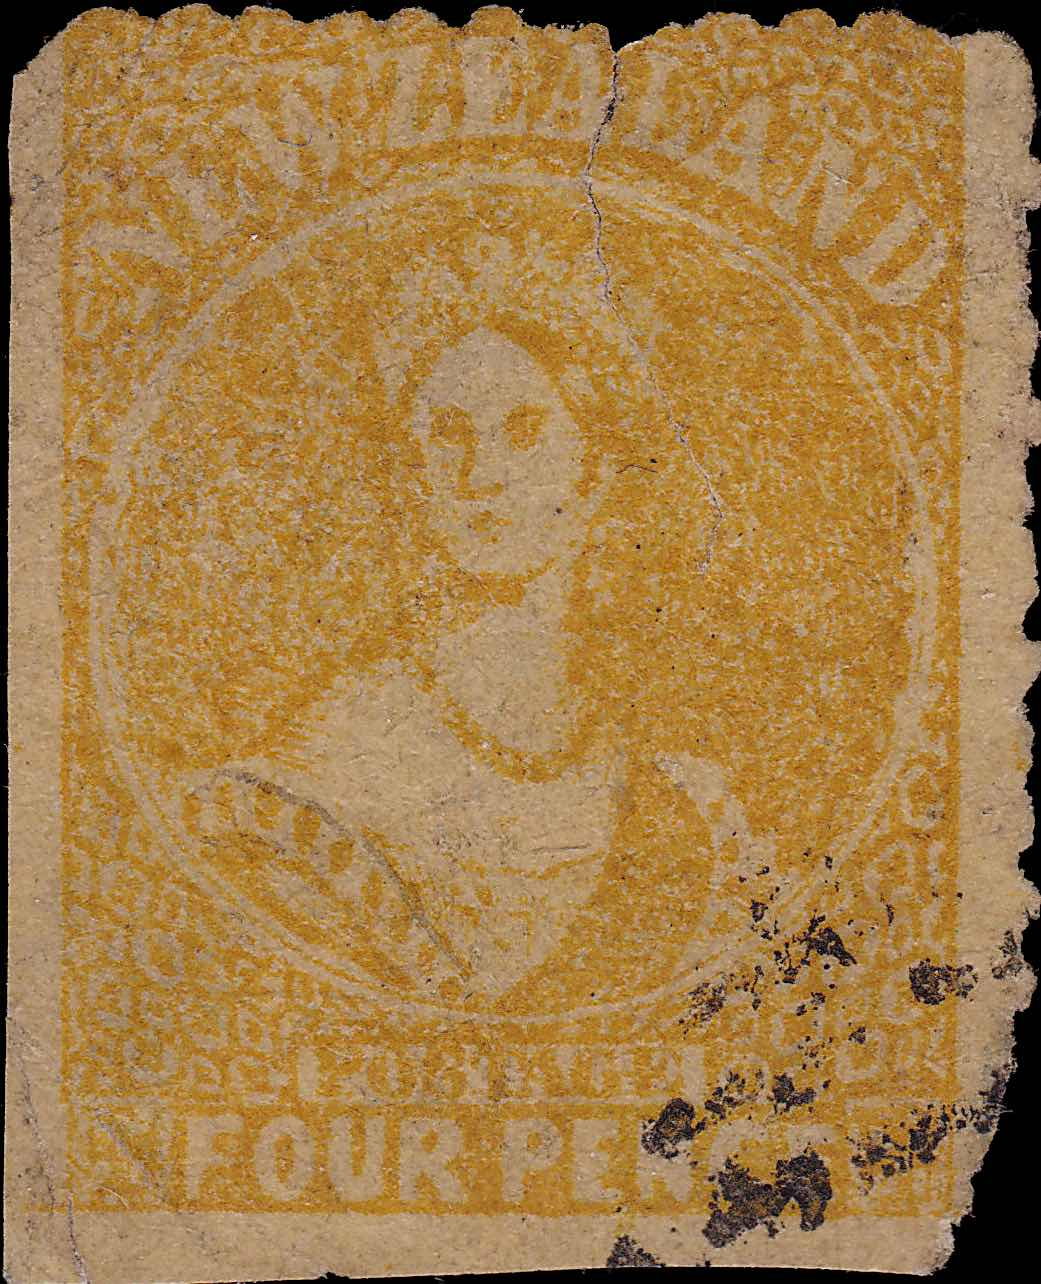 New_Zealand_QW_4p_Forgery